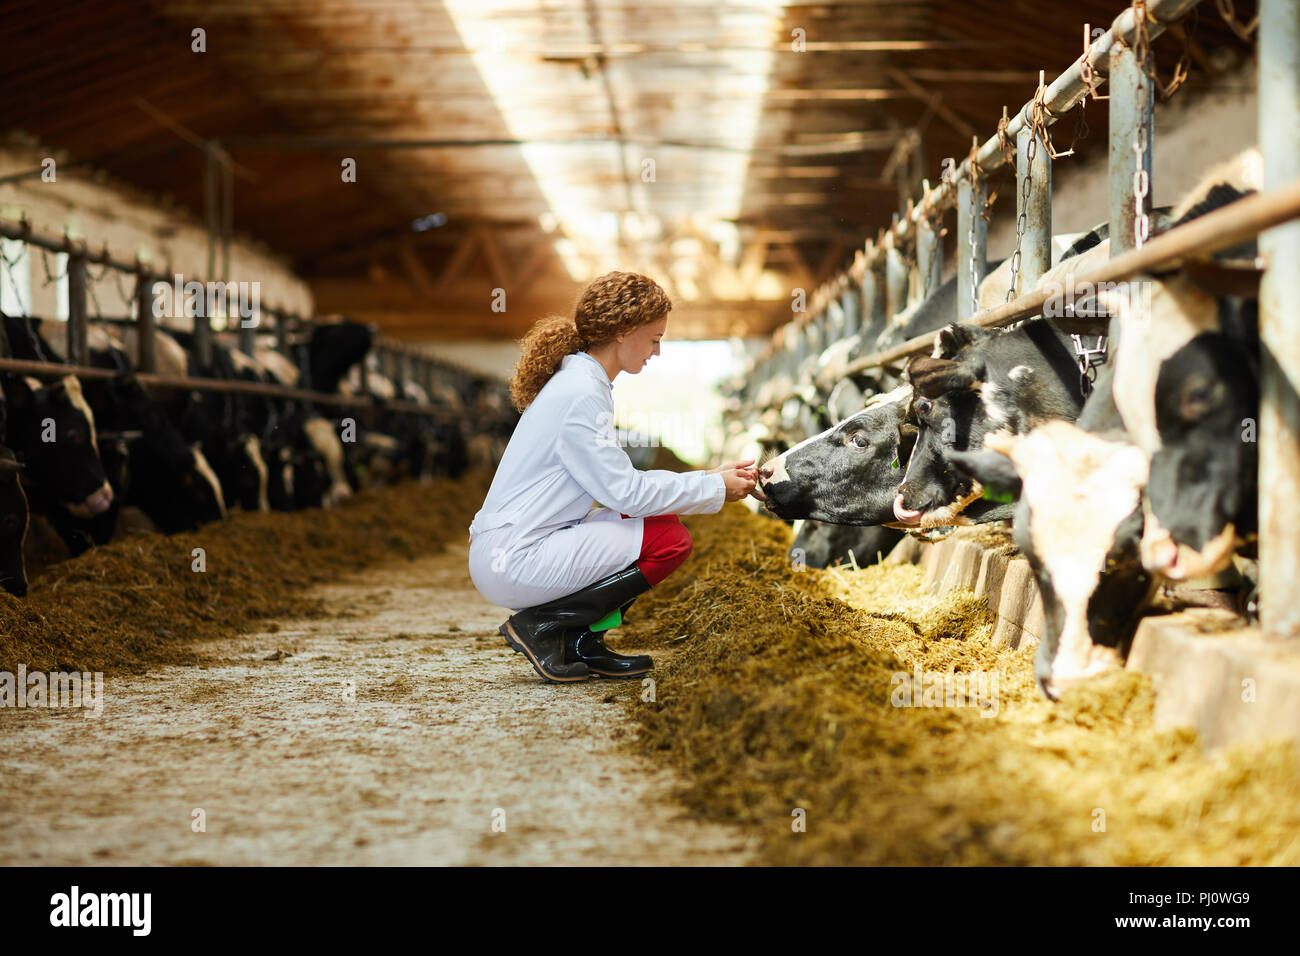 Young Woman Caring for Cows - Stock Image